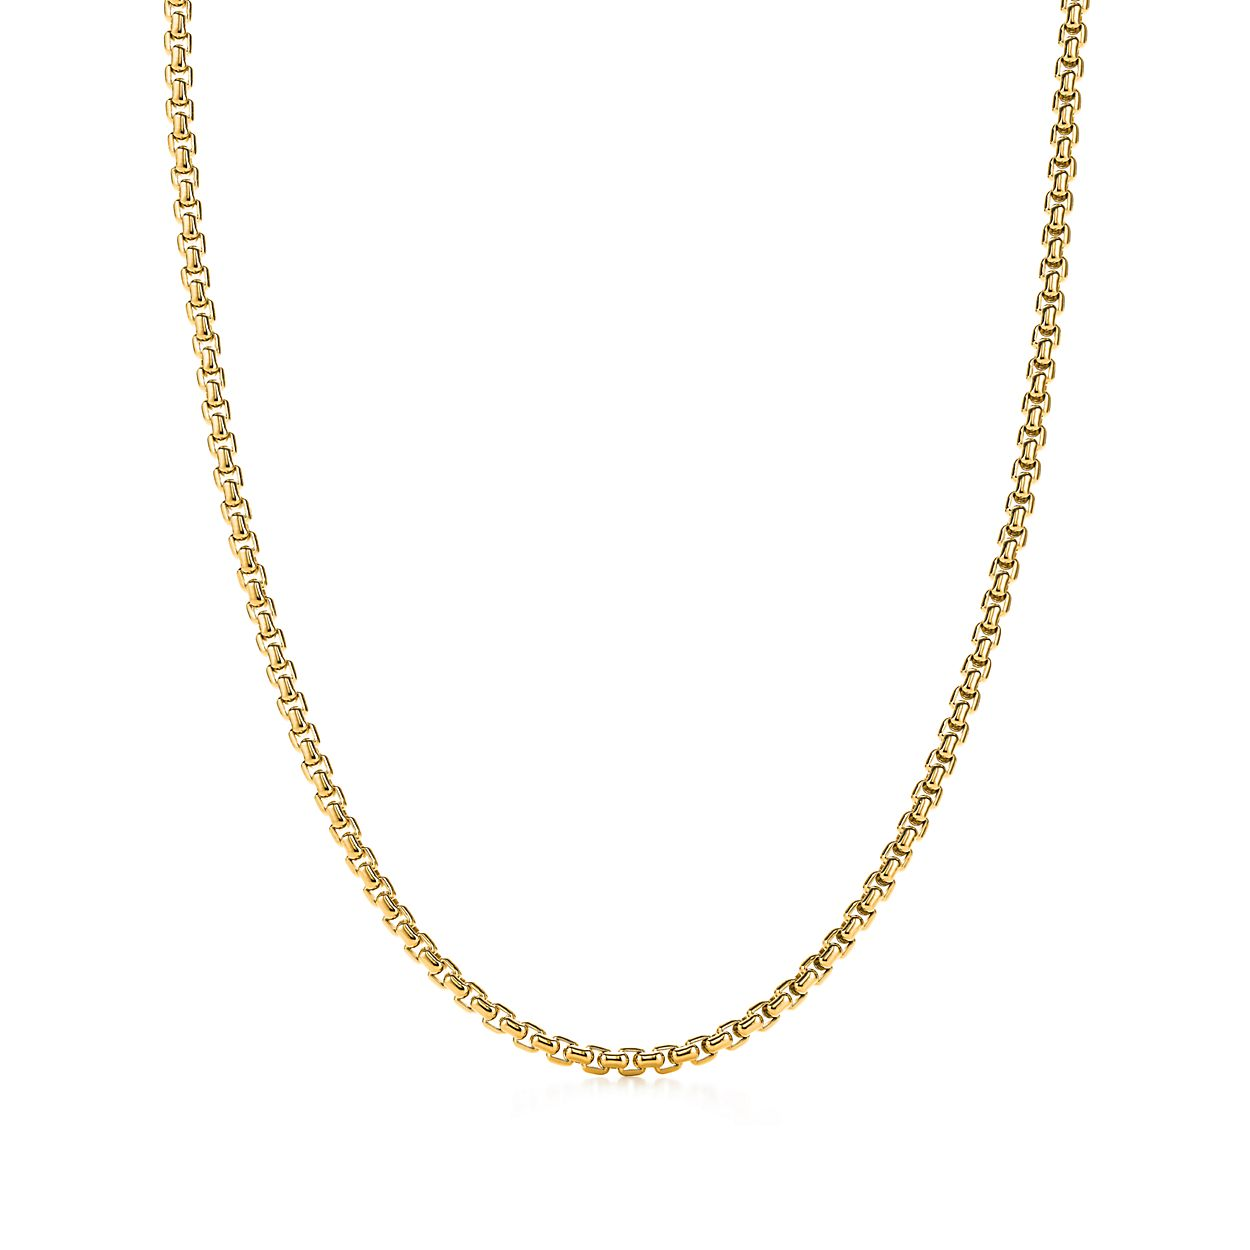 gold remenyi eva eve quadratic square products necklace detailsg by